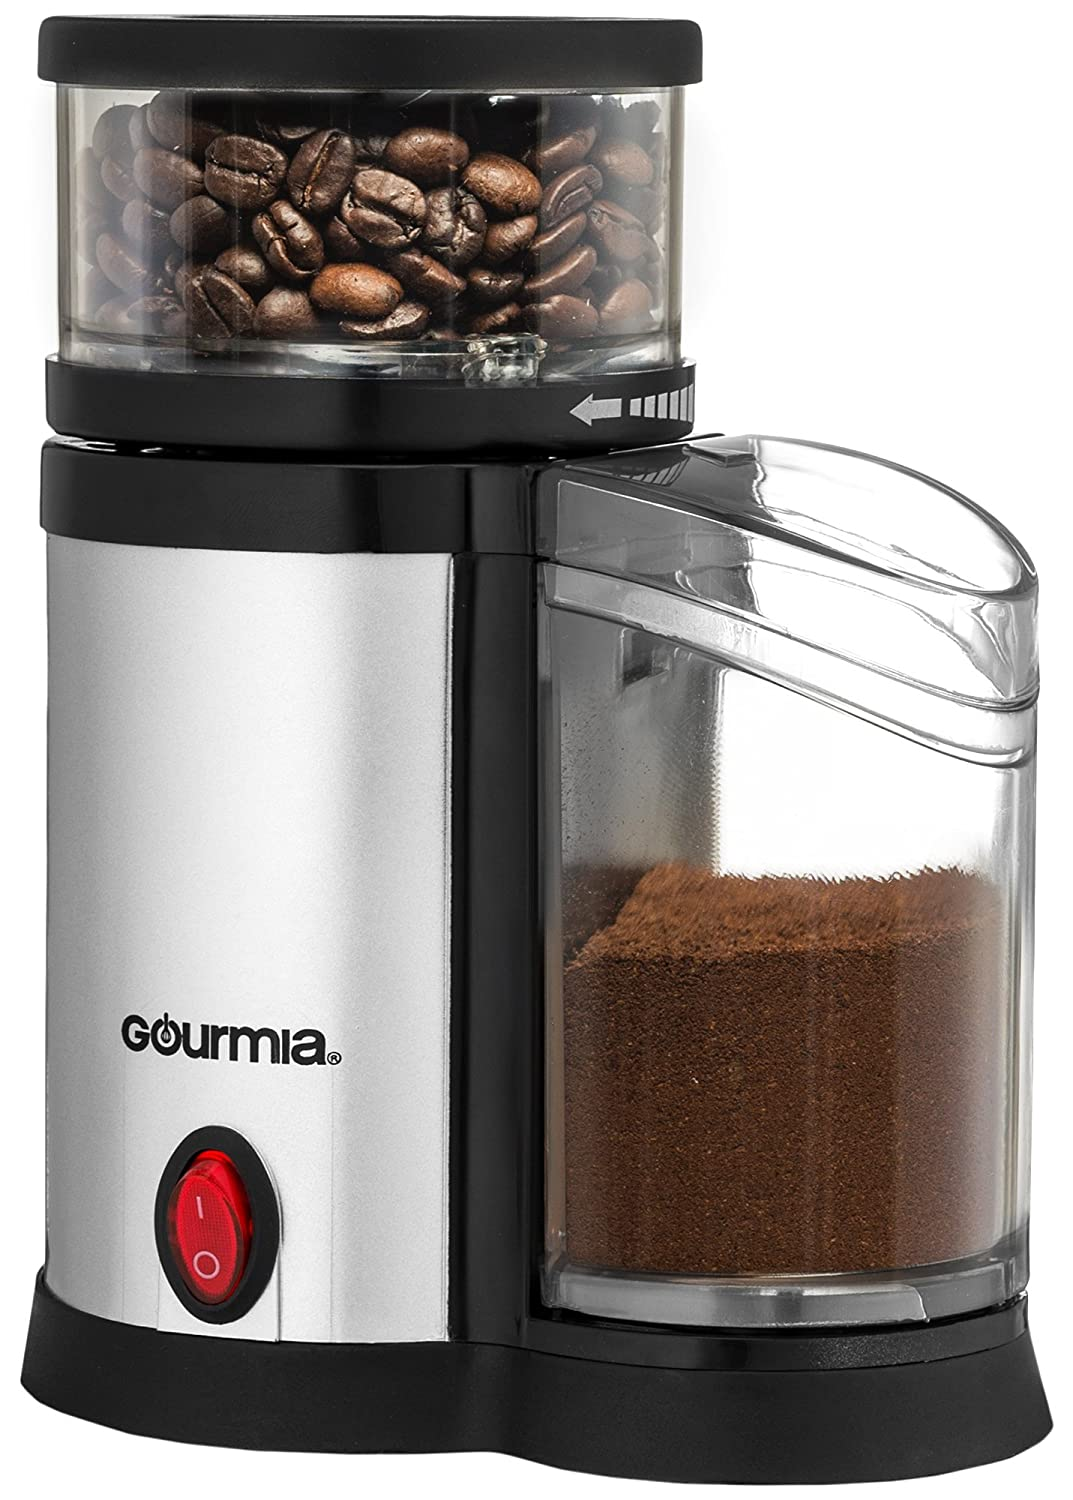 Gourmia GCG165 Compact Electric Burr Coffee Grinder